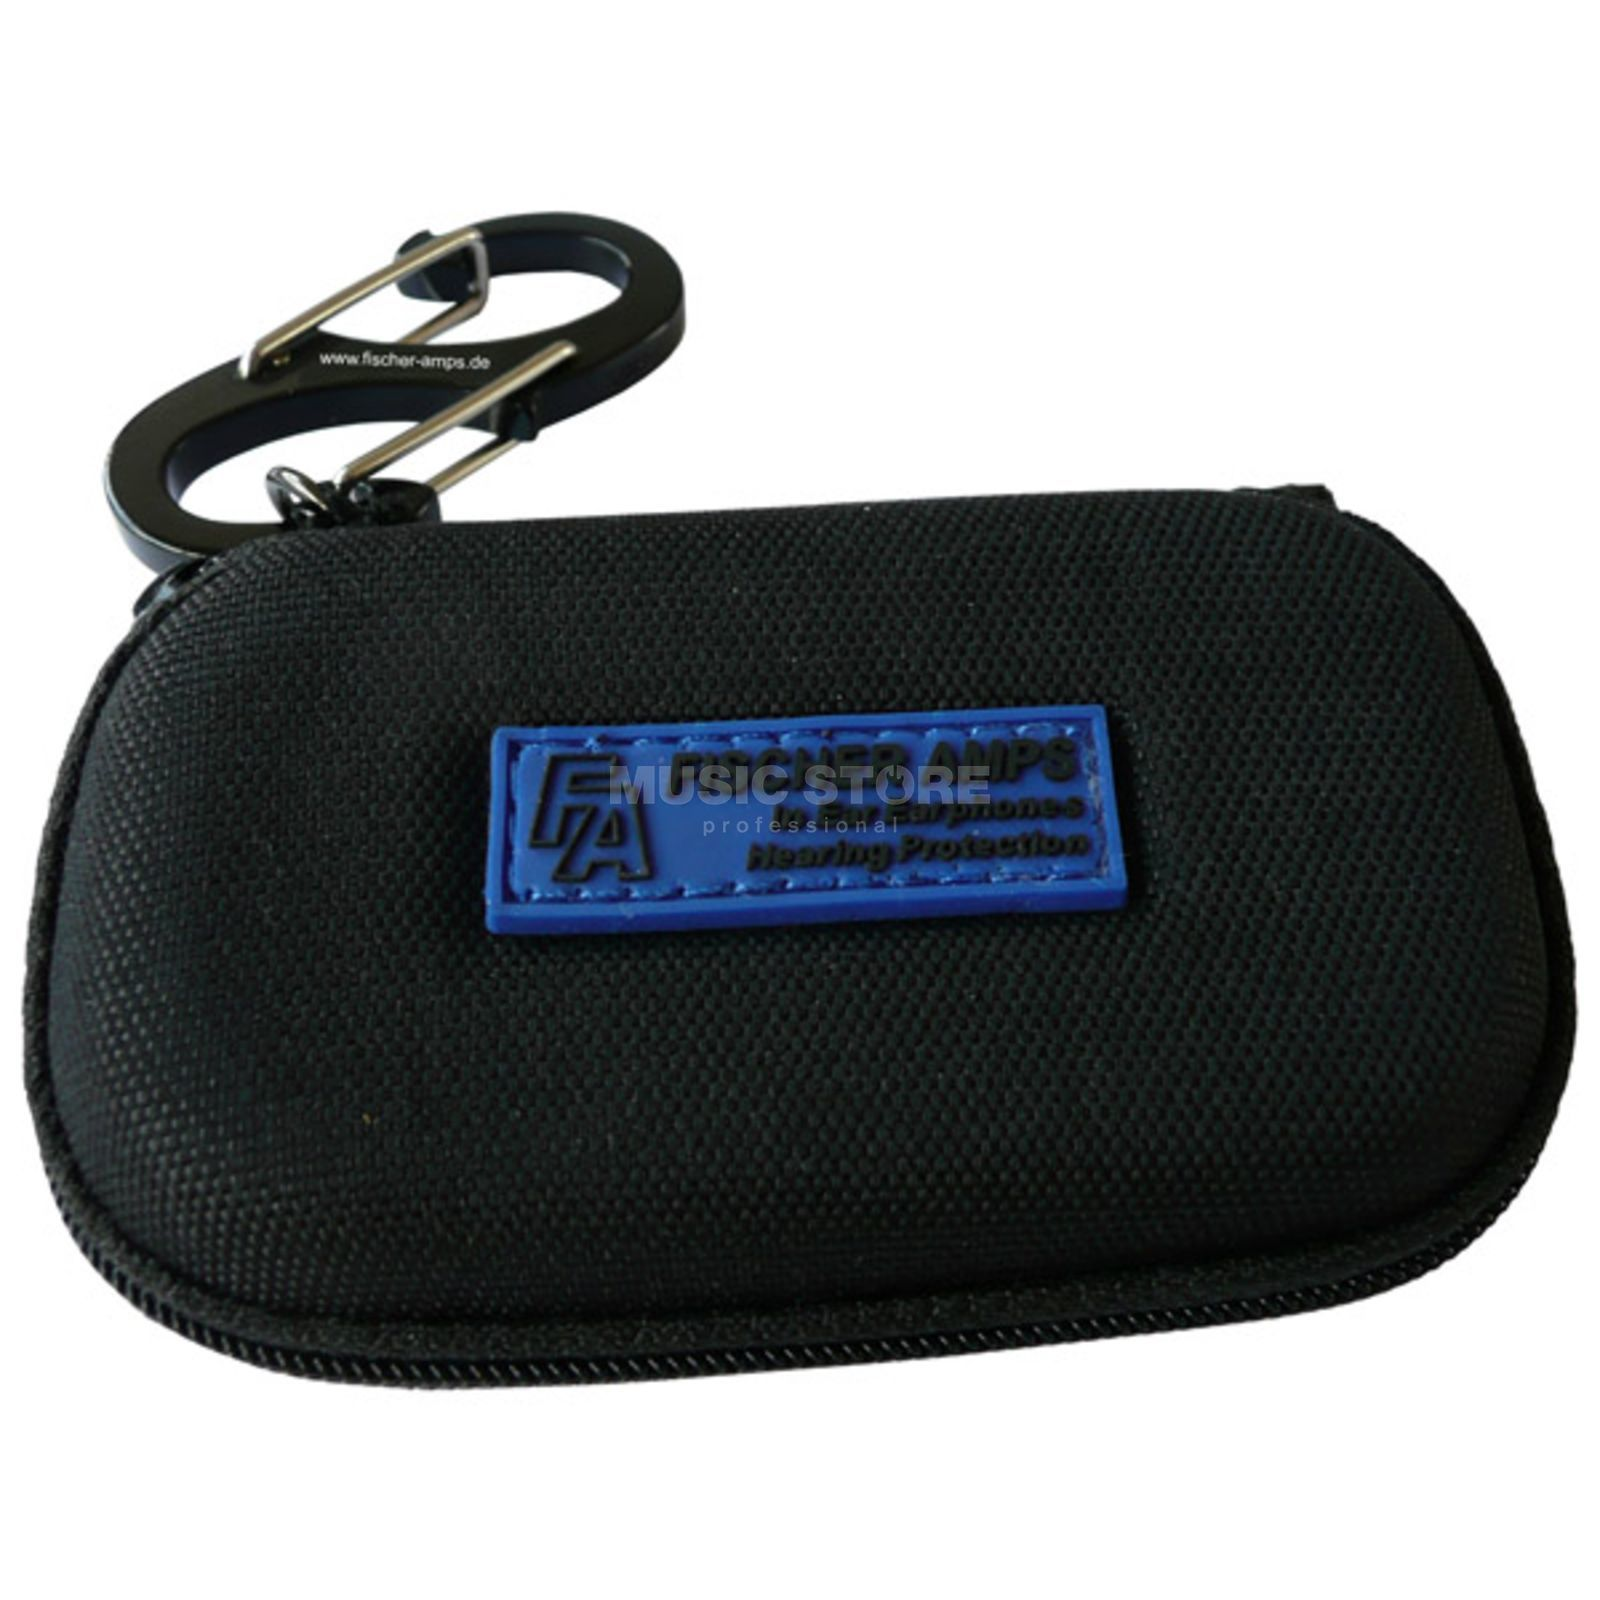 Fischer Amps Travel Bag, Transport Bag for FA-Earphones, with Karabiner Produktbillede